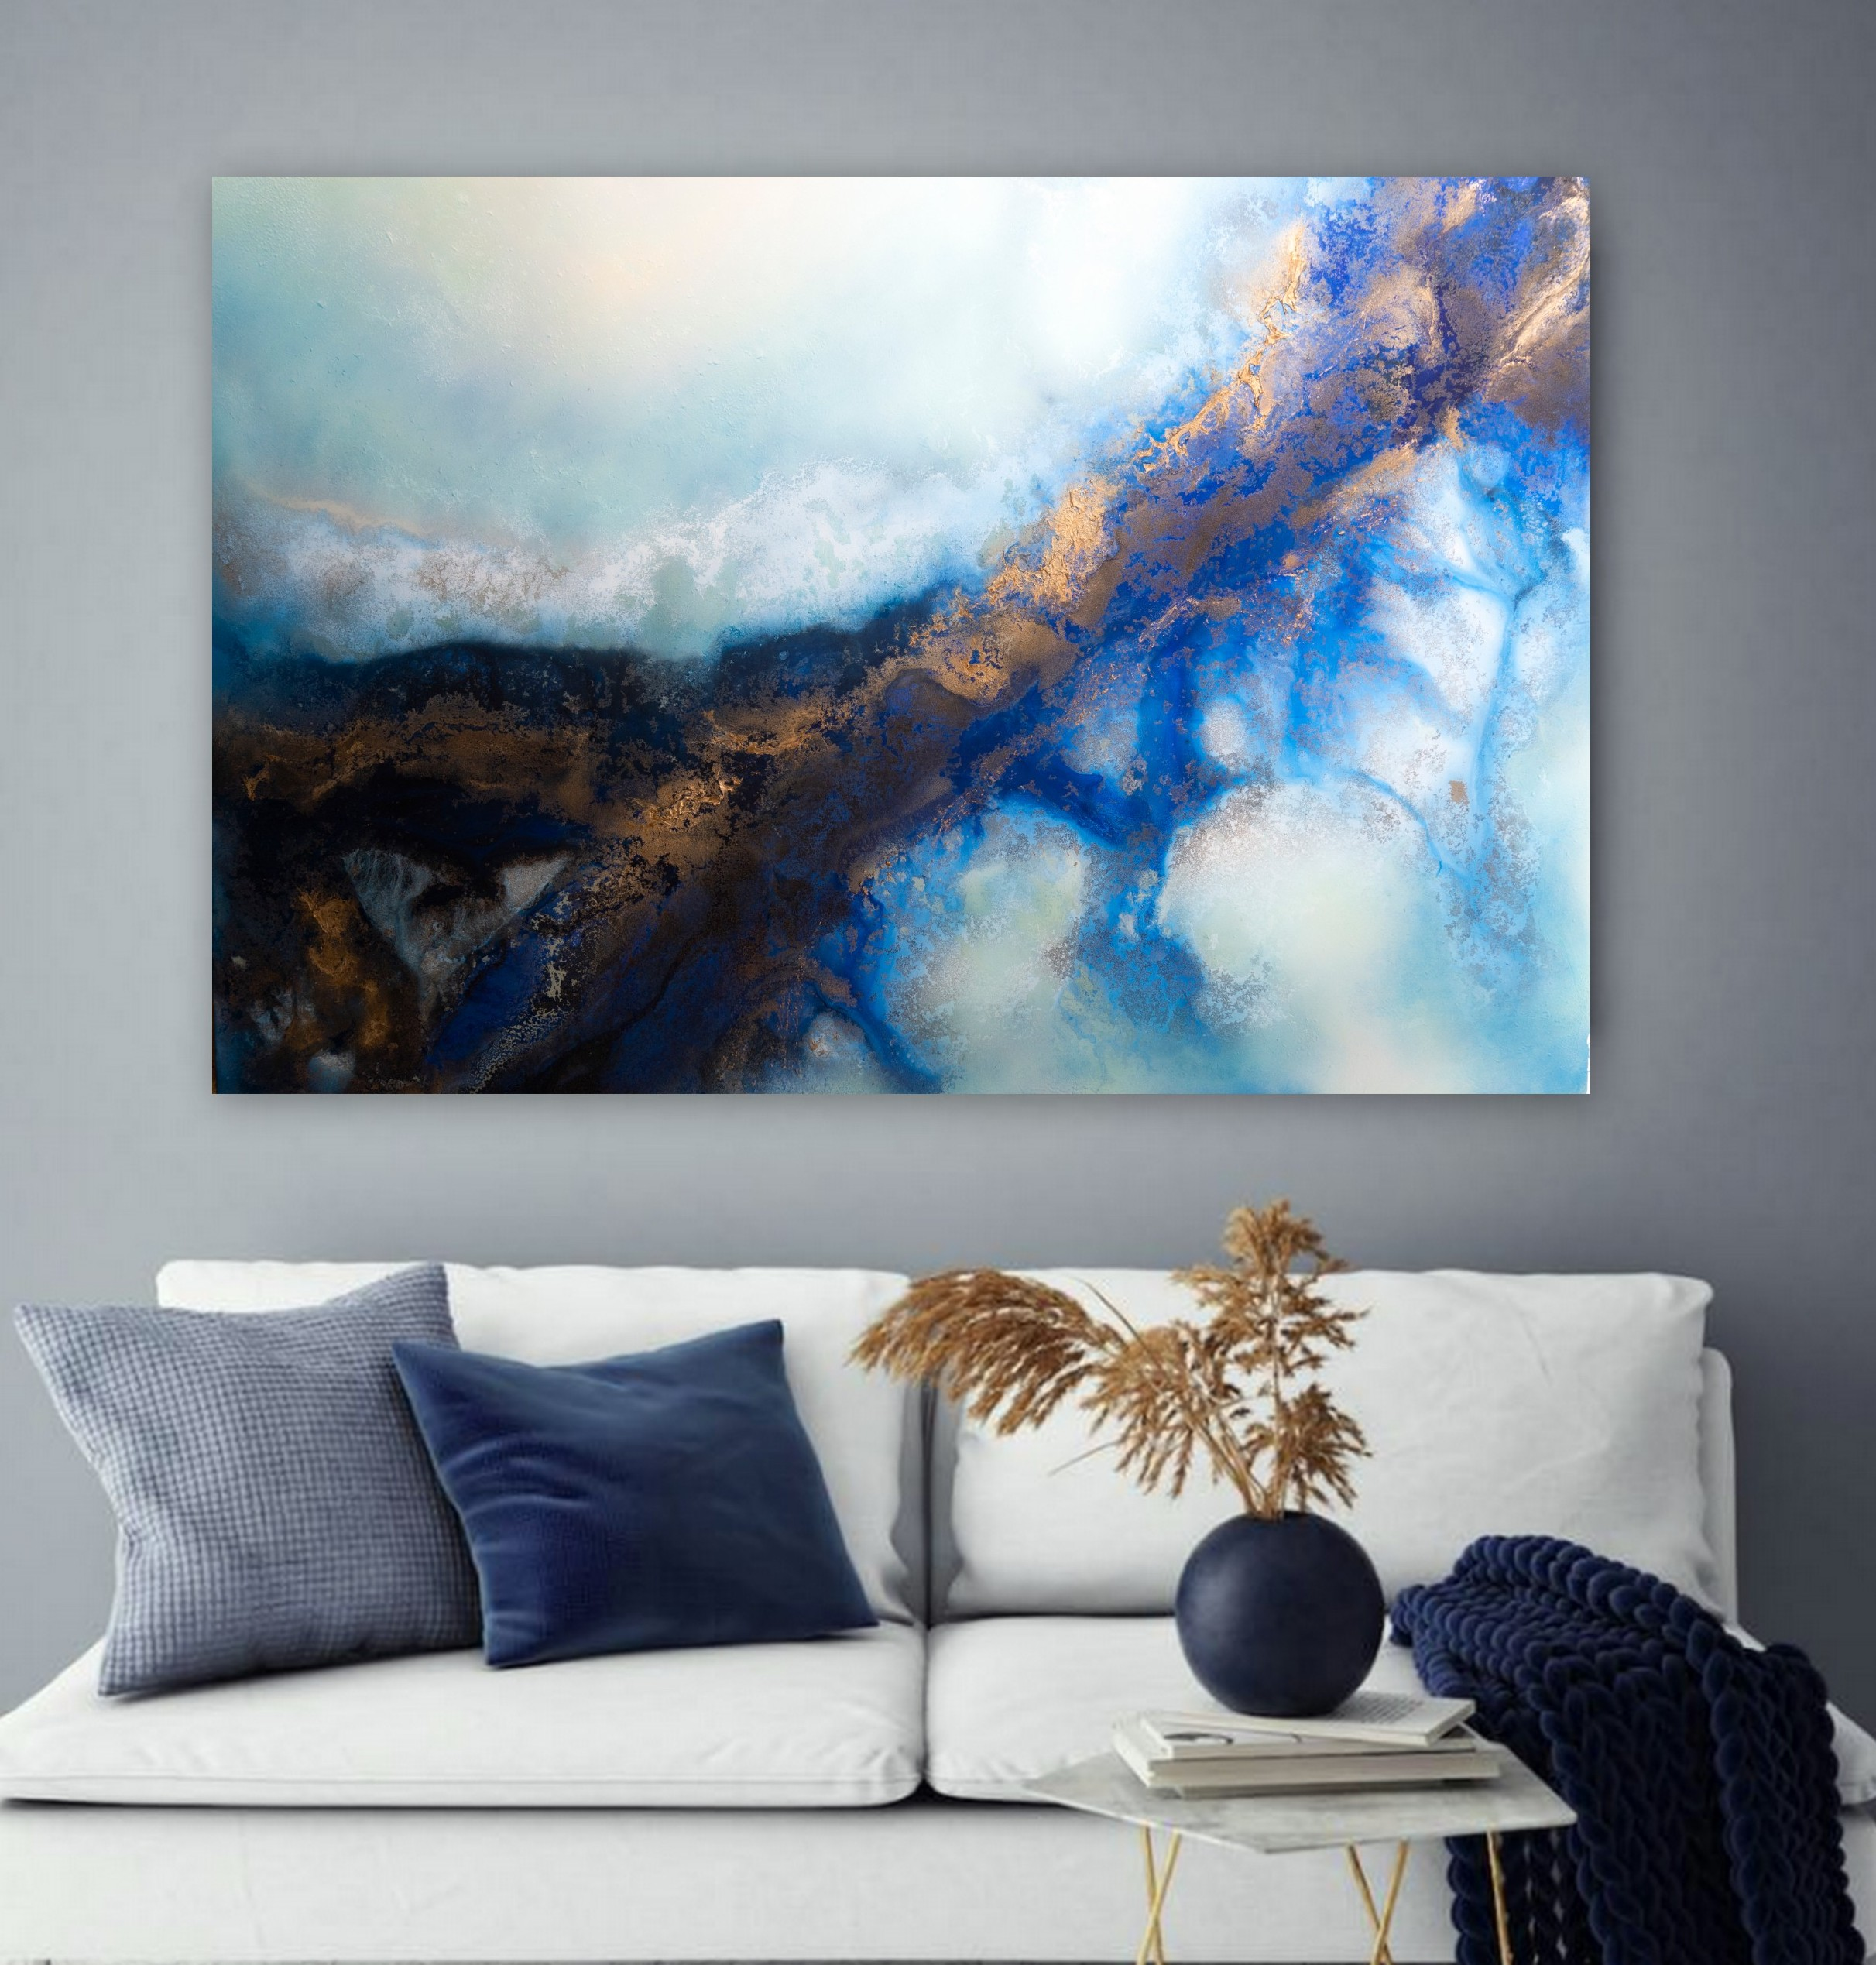 Large Ocean Wall Art Petra Meikle De Vlas3